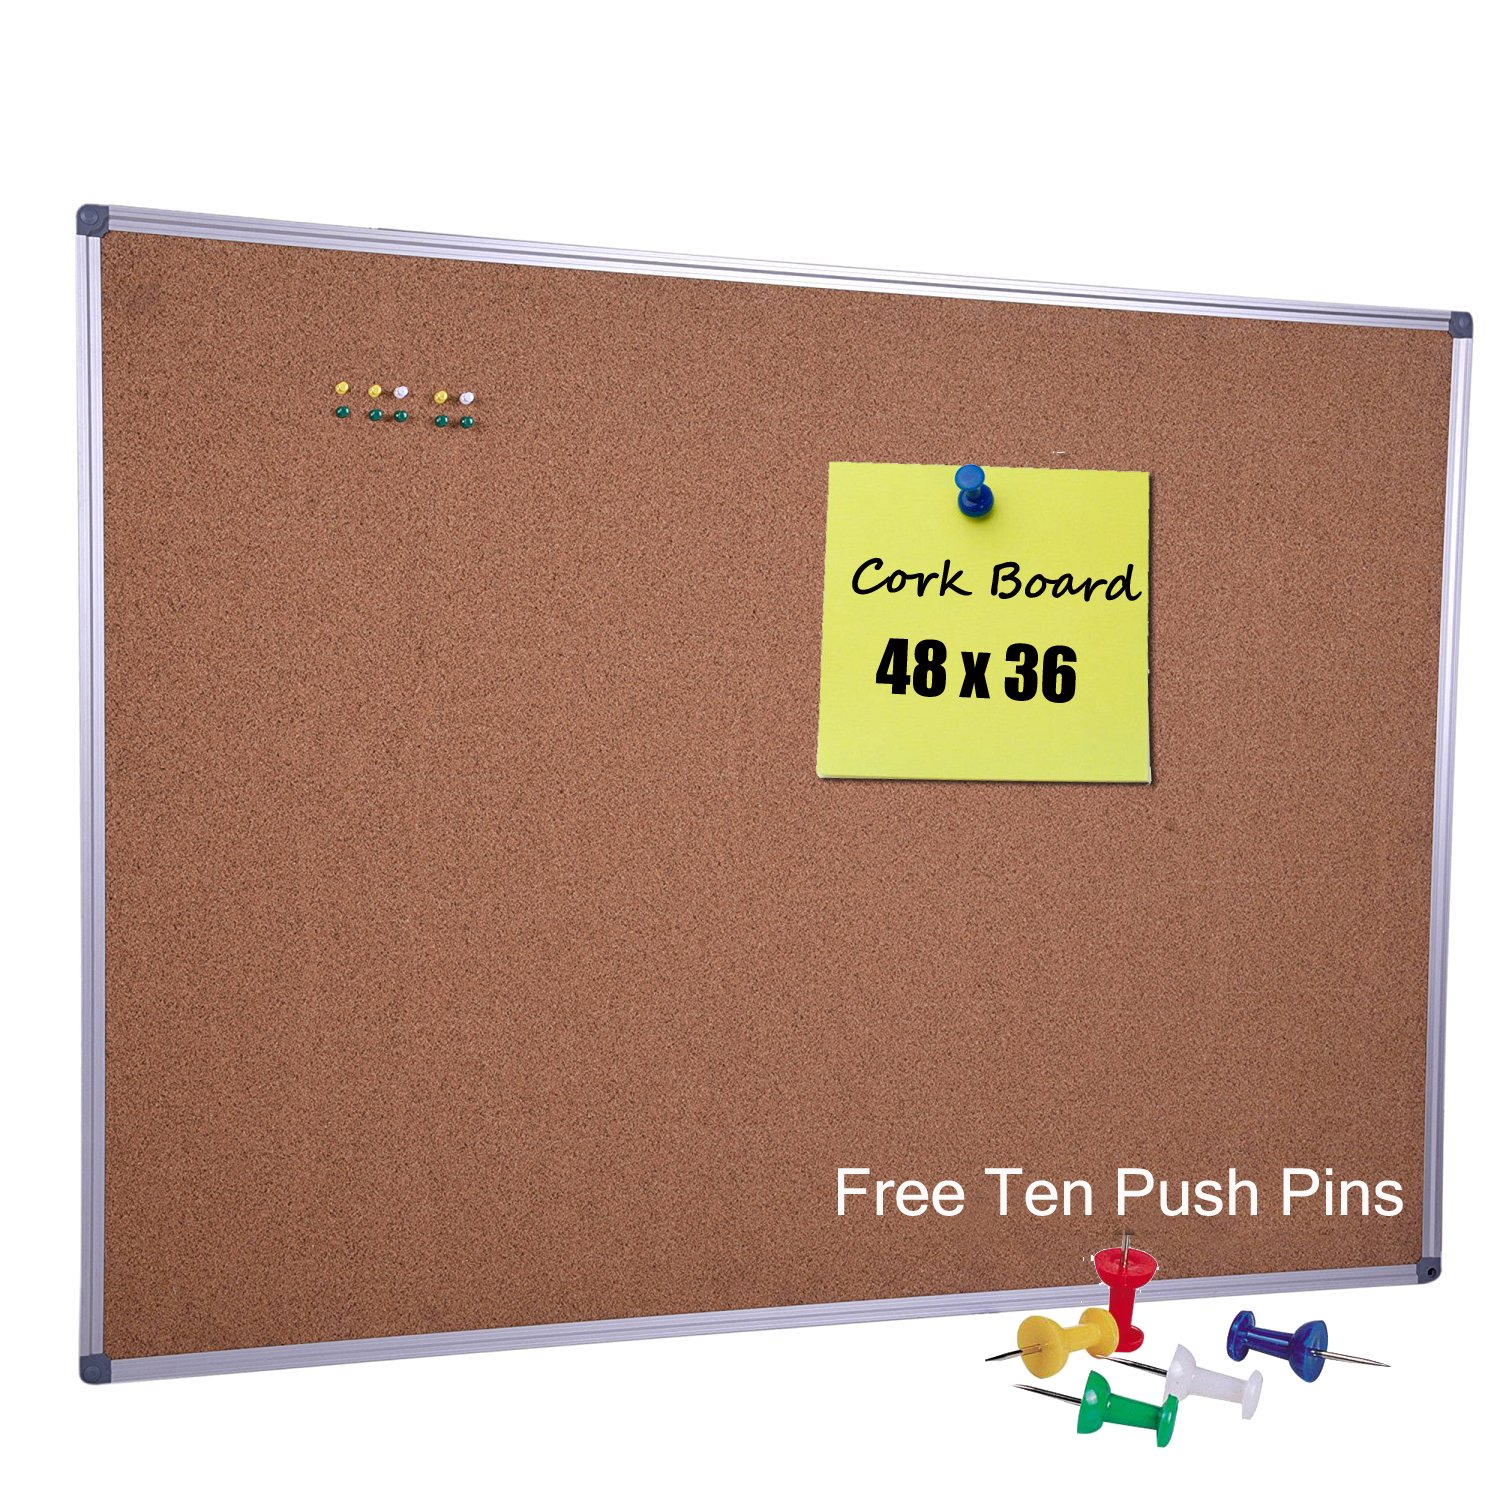 DexBoard 48 x 36 inch Aluminum Frame Large Cork Board, Notice Bulletin Board Memo Pin Board for Office and Home Usage, Ten Free Pins Included